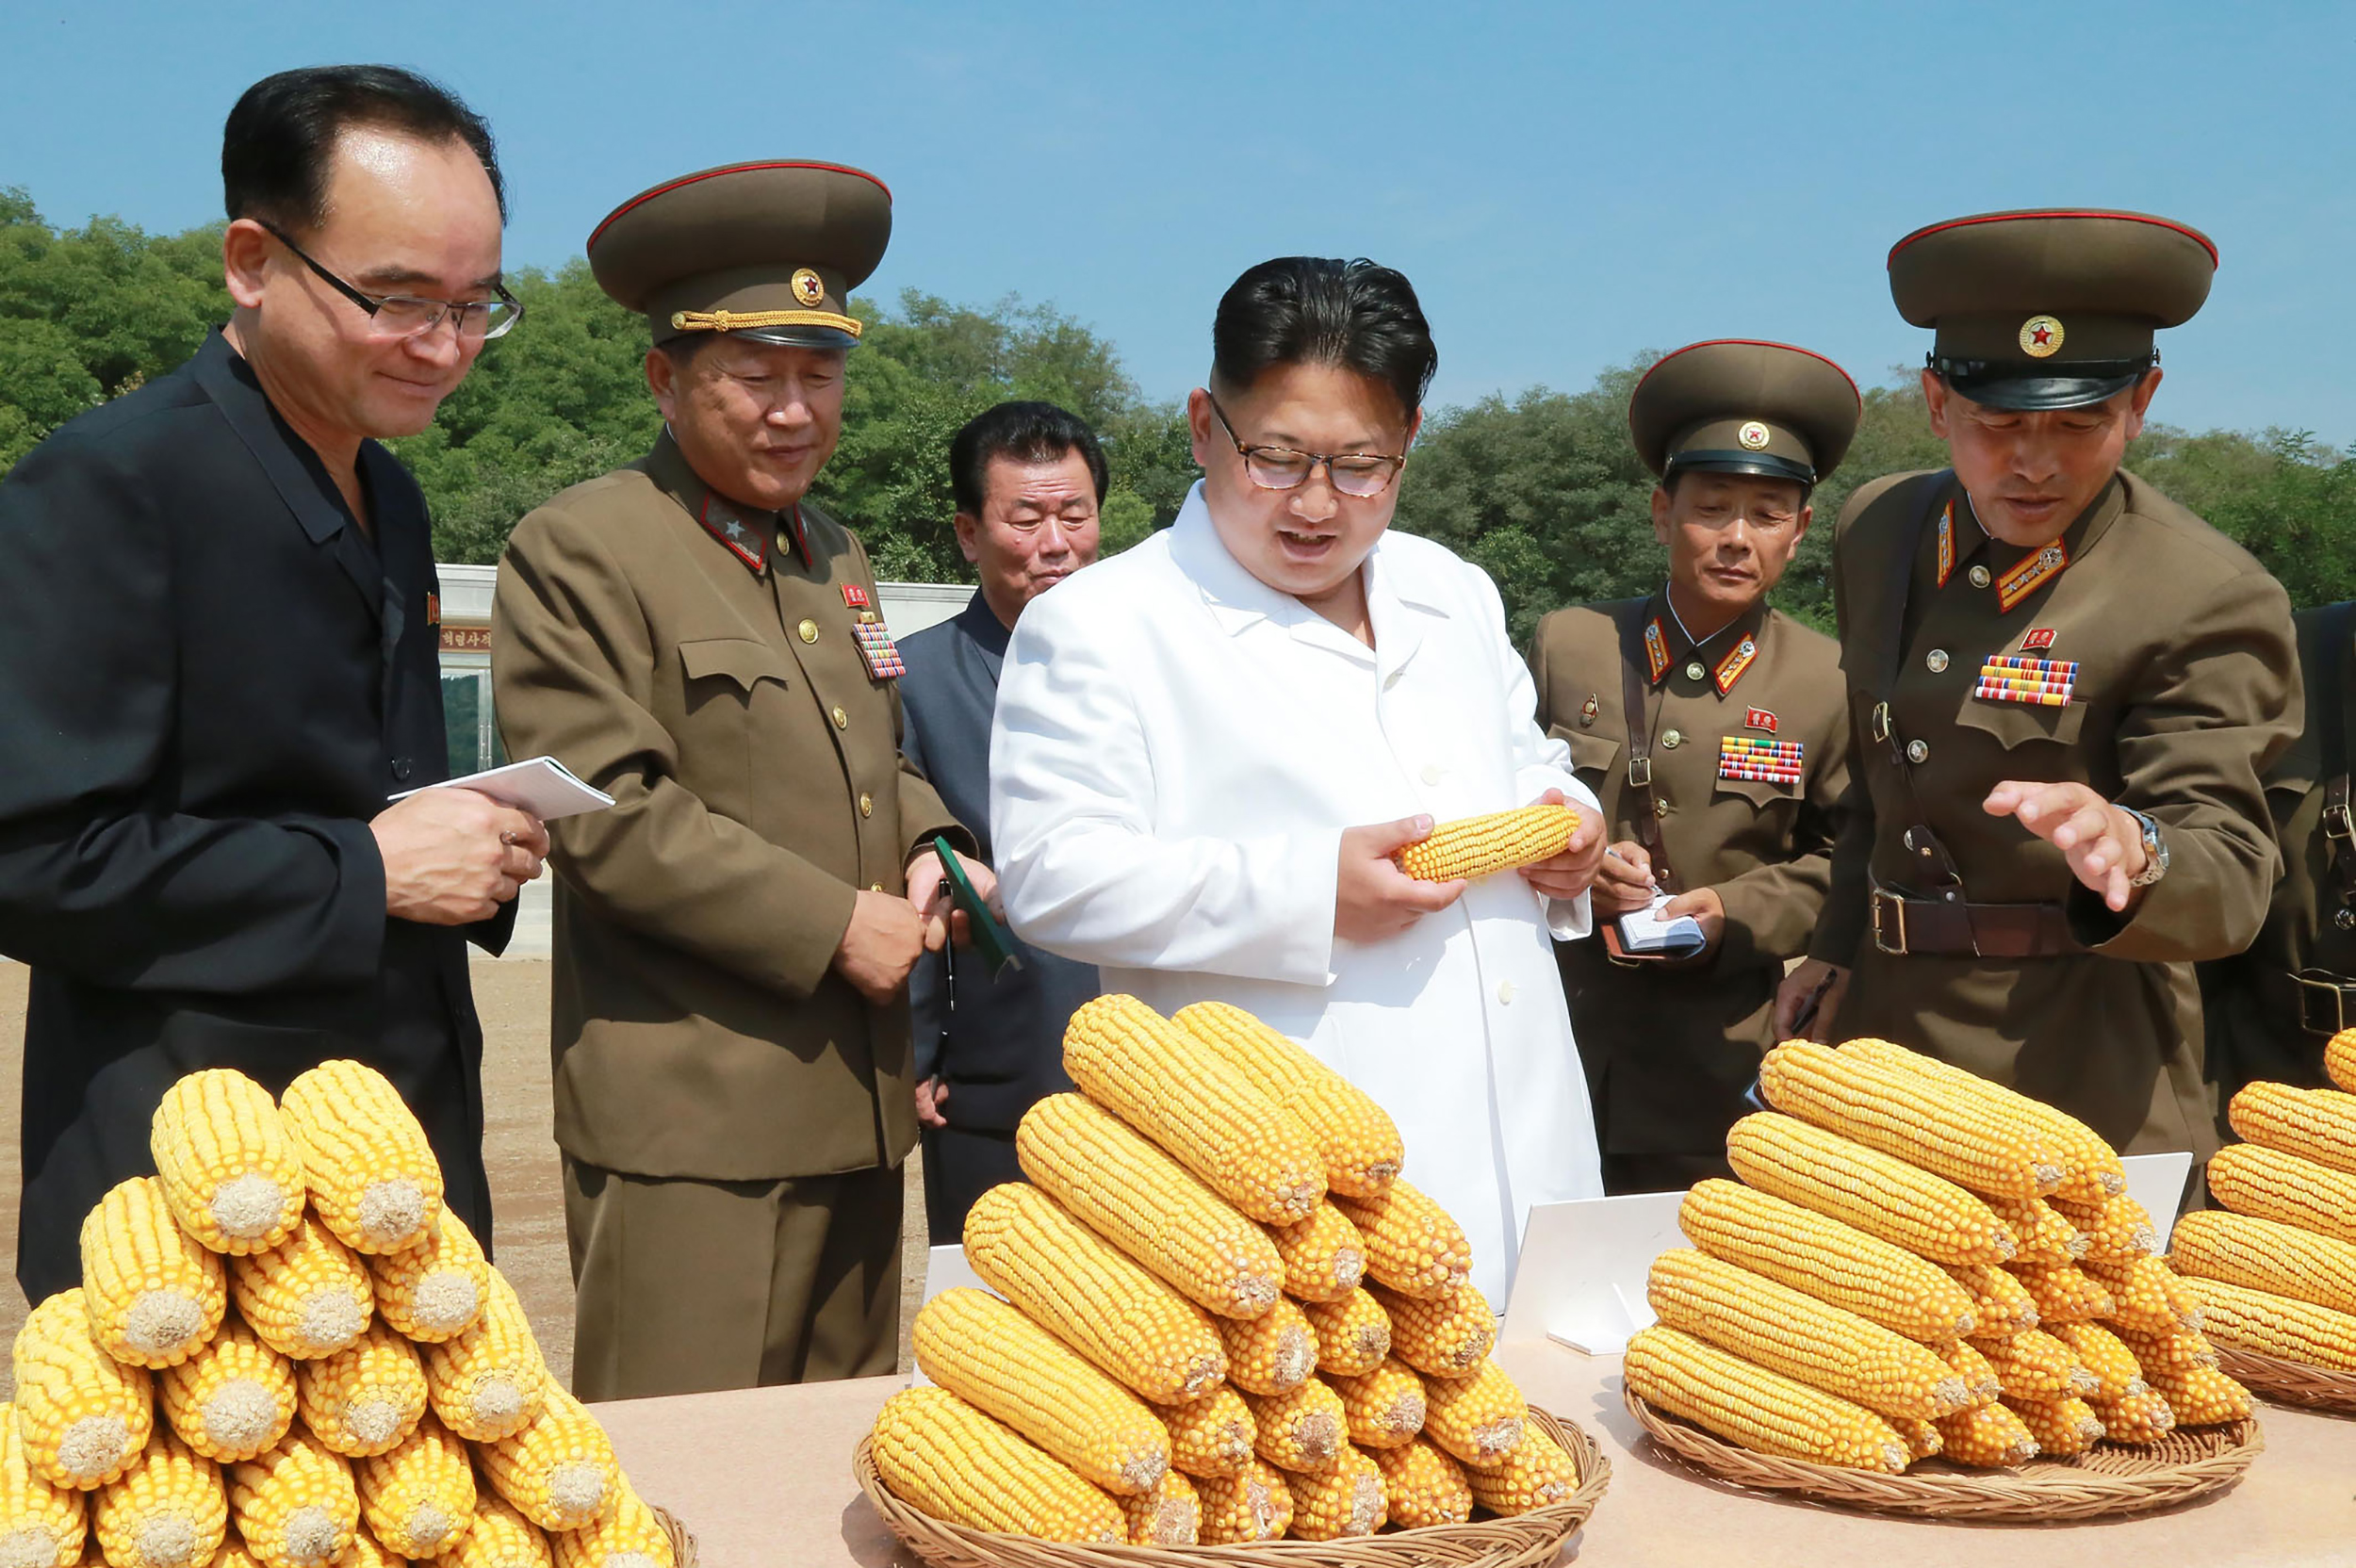 Nuclear tests or corn harvests? Making sense of North Korea satellite imagery